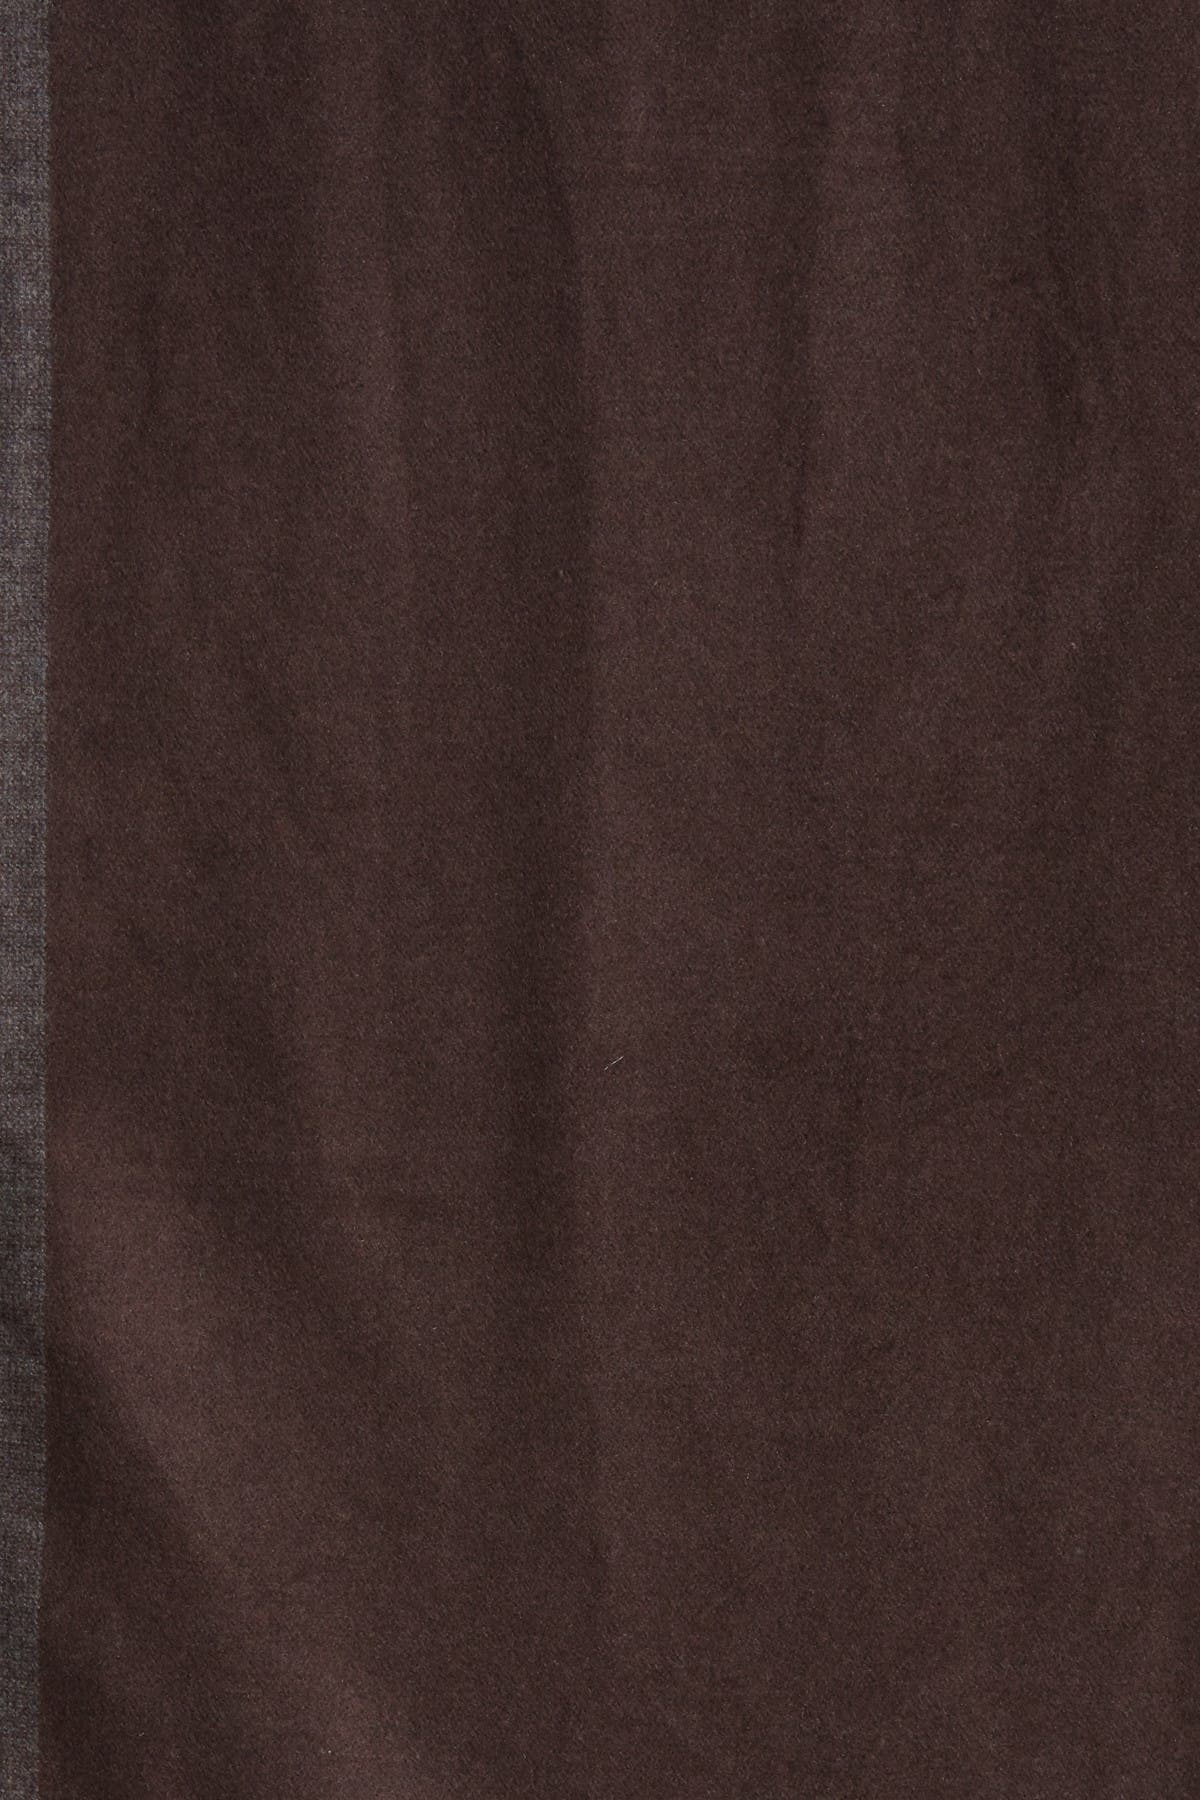 Image of Chelsey Imports Reverse Border Trim Silk Scarf